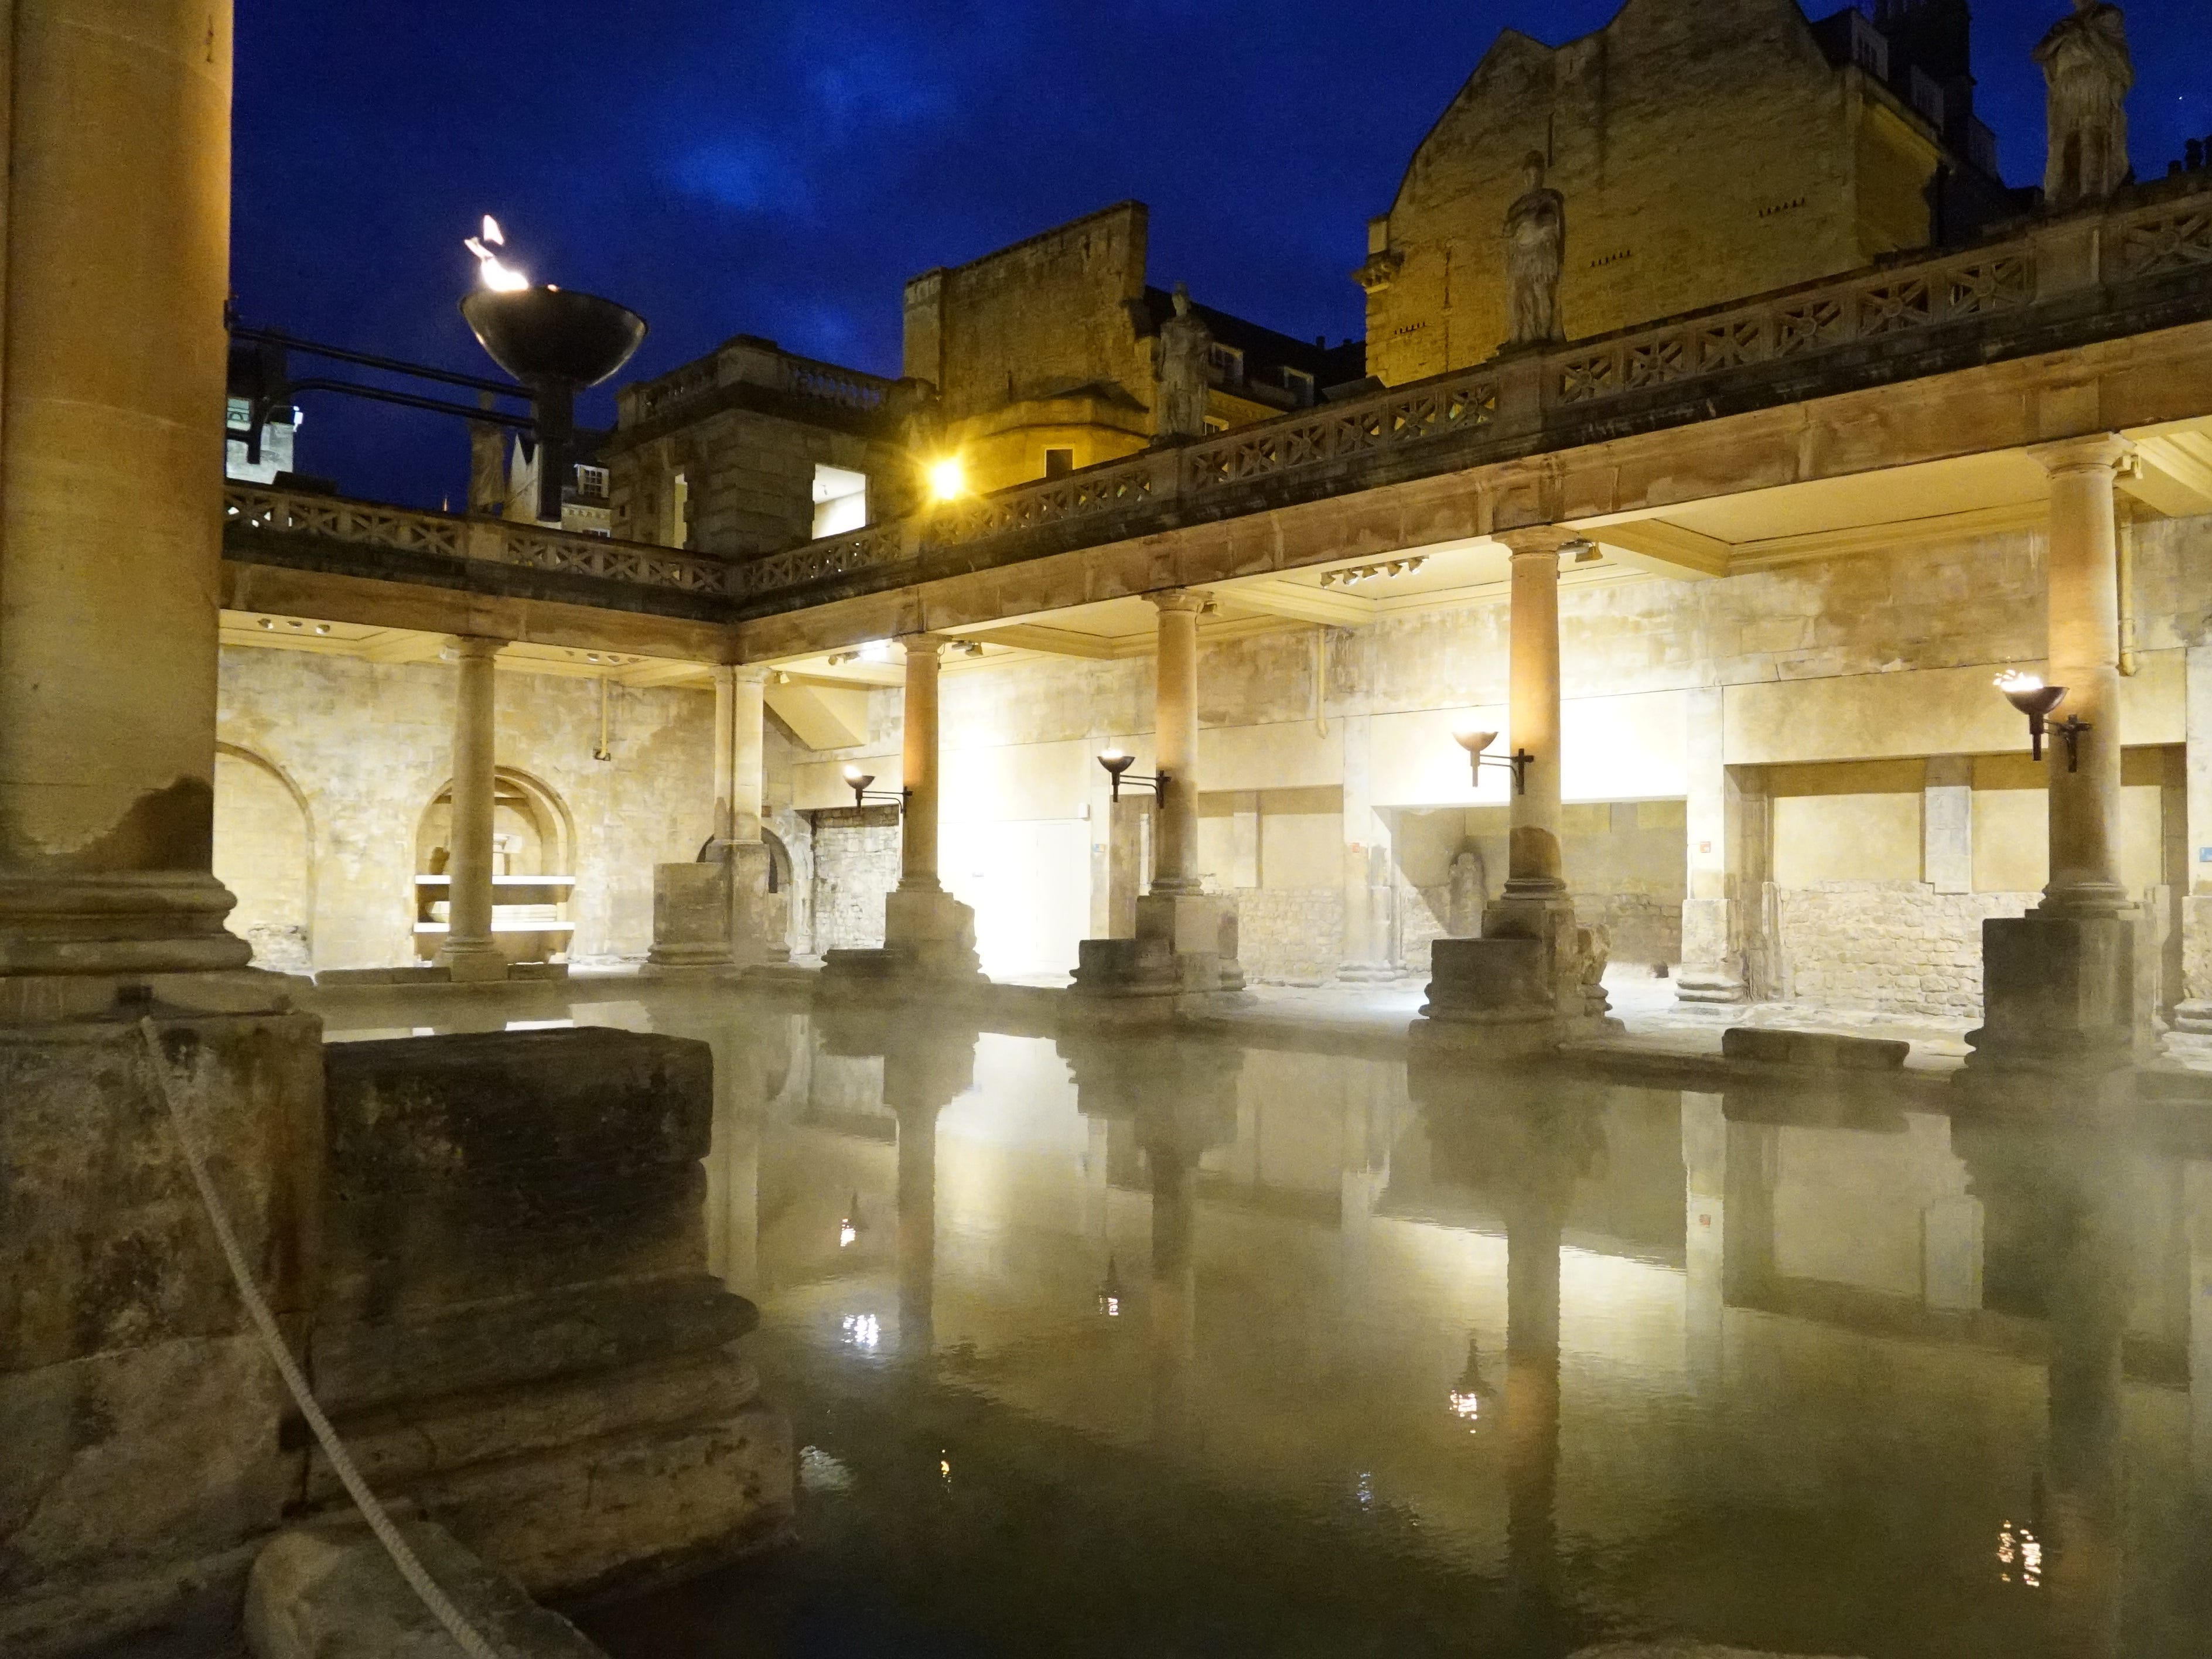 The Roman Baths were built over a natural hot spring, and in the predawn hours, you can see the steam rising over this historic site.